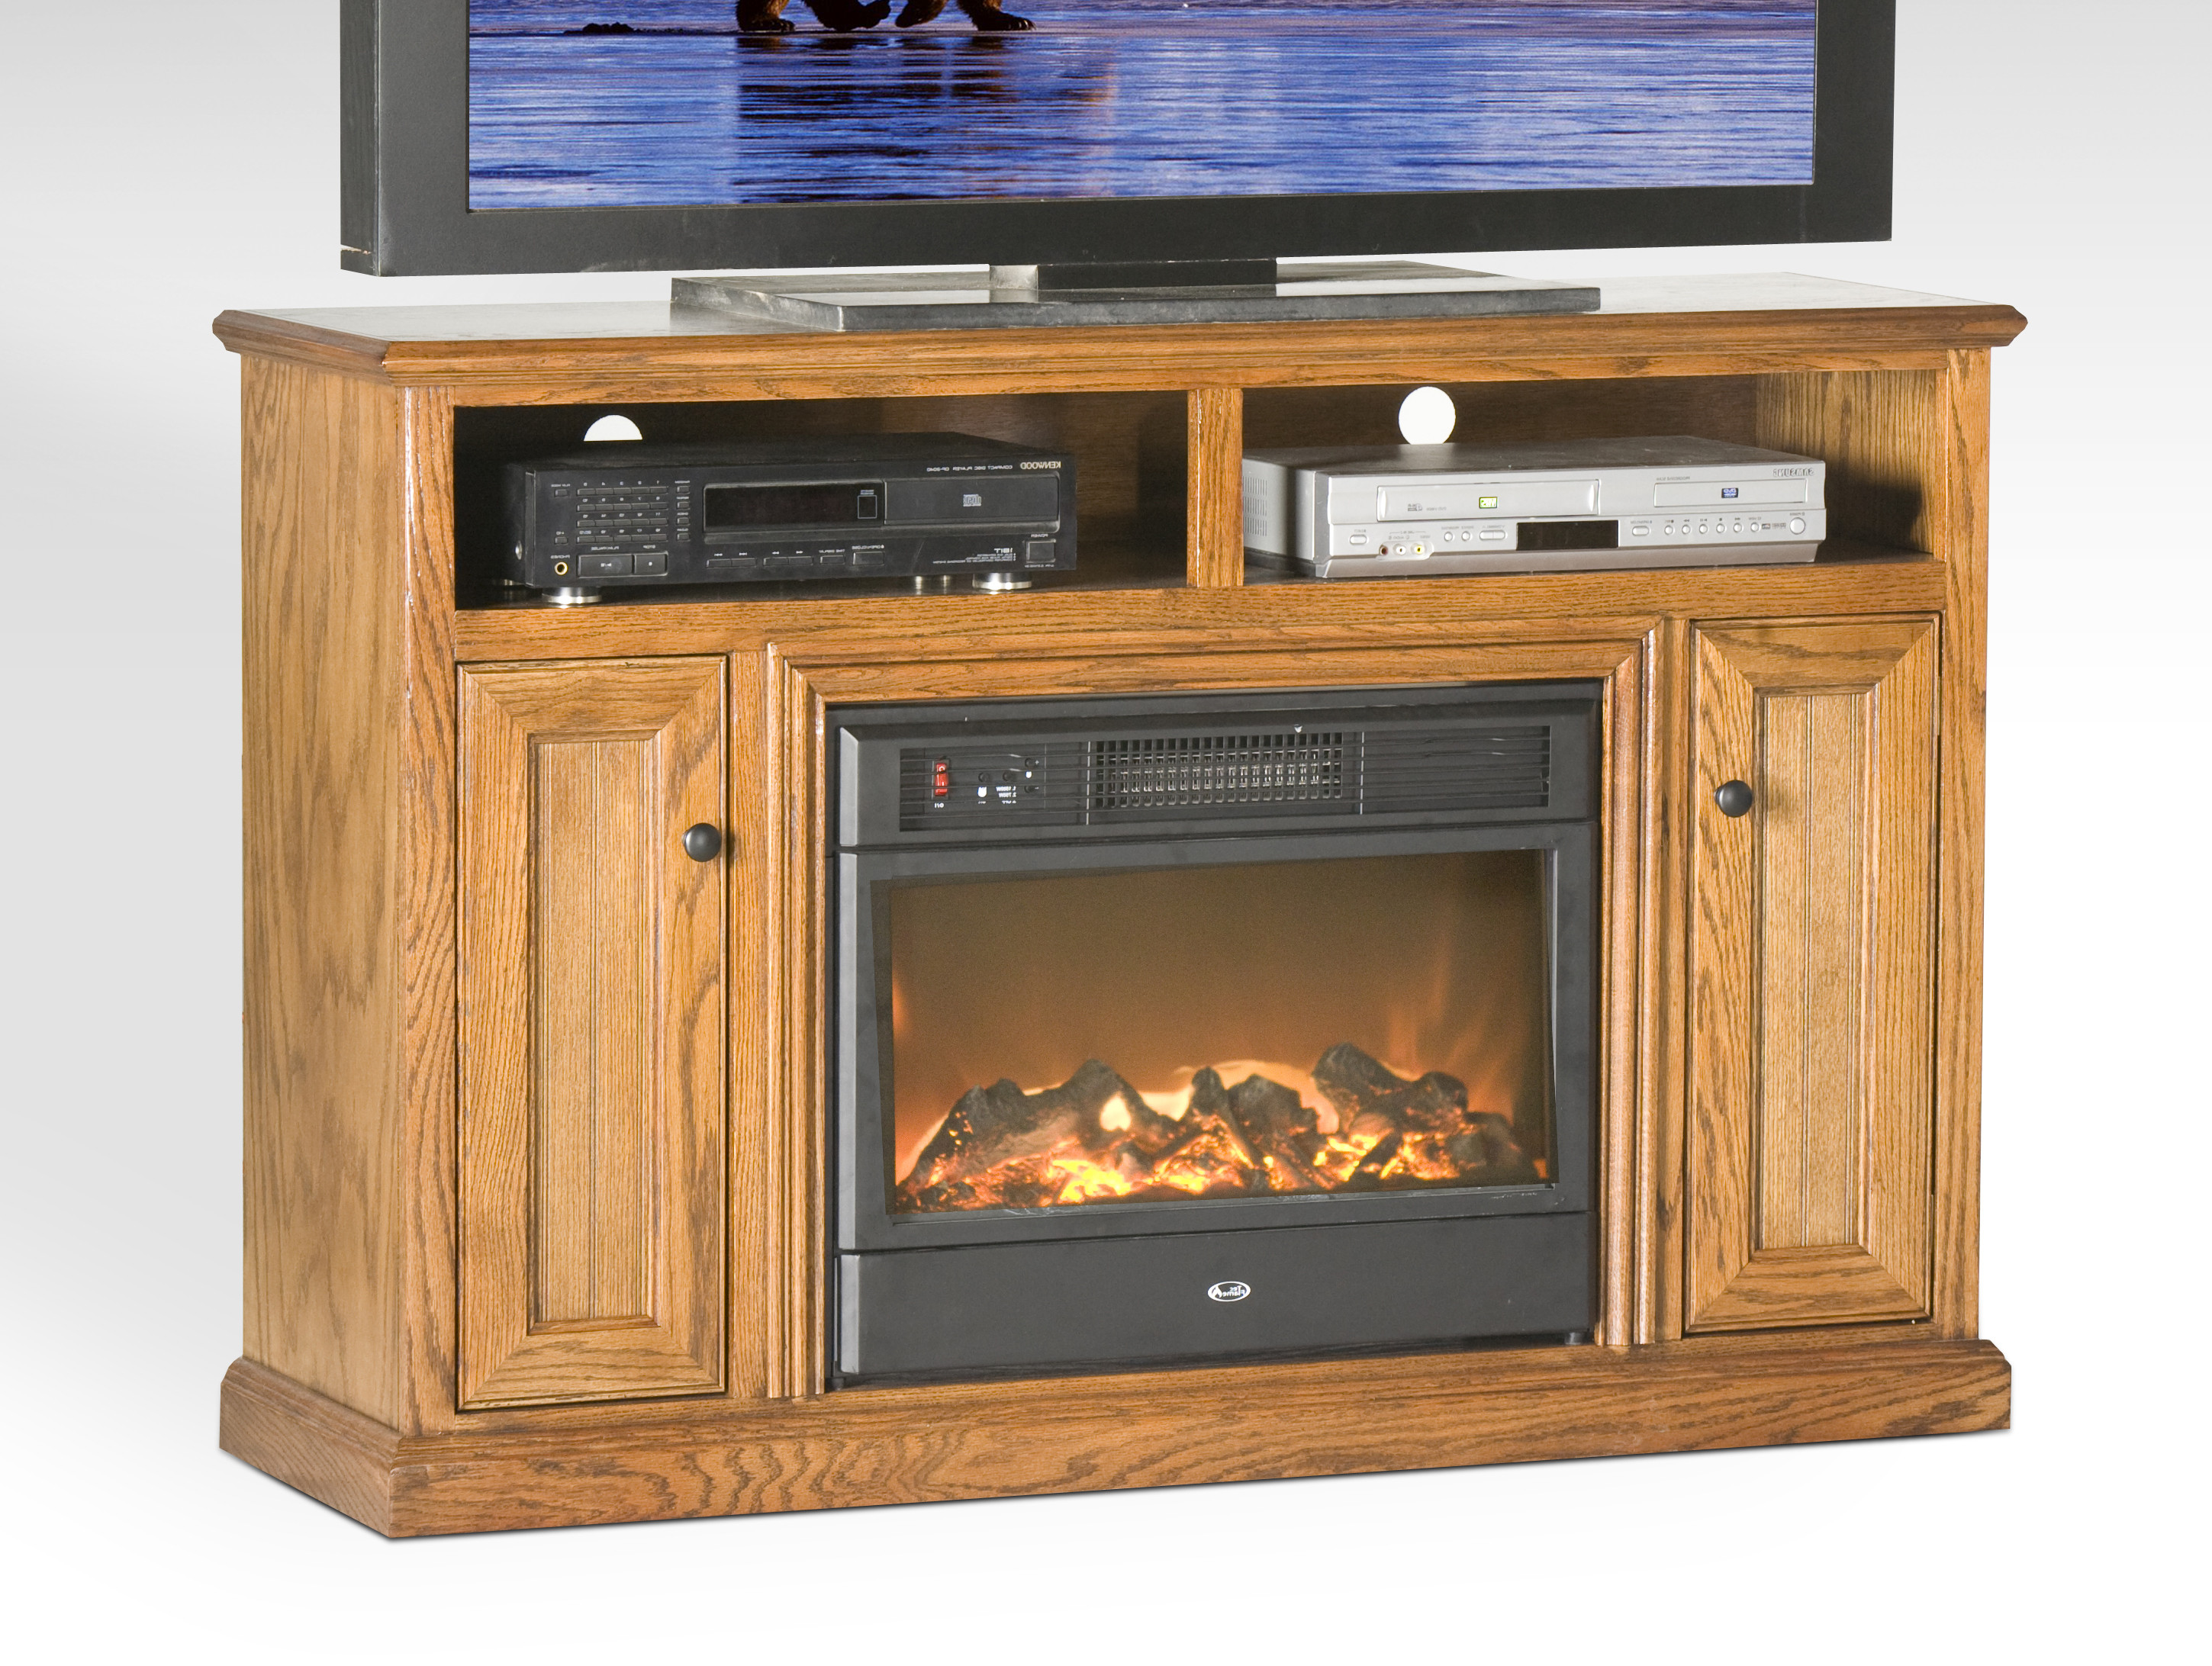 Best ideas about Sears Fireplace Tv Stand . Save or Pin Decoration Awesome Sears Electric Fireplace Decor For Now.